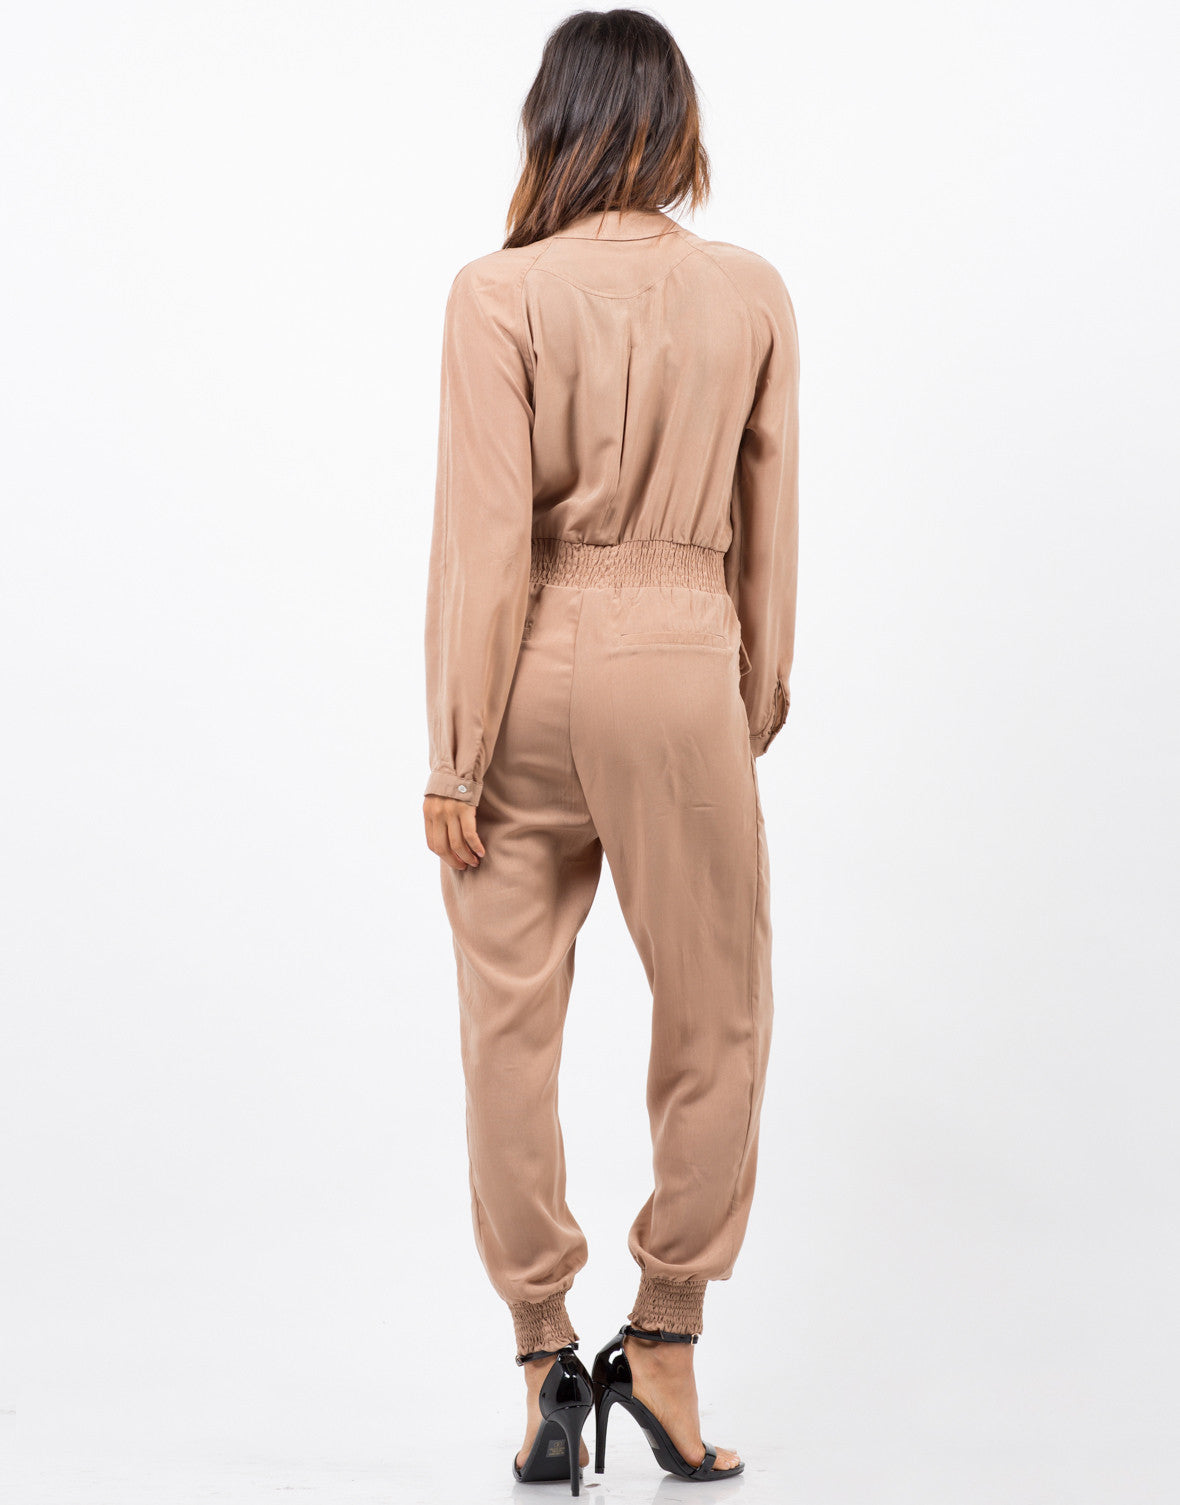 Back View of Zipped Up Utility Jumpsuit